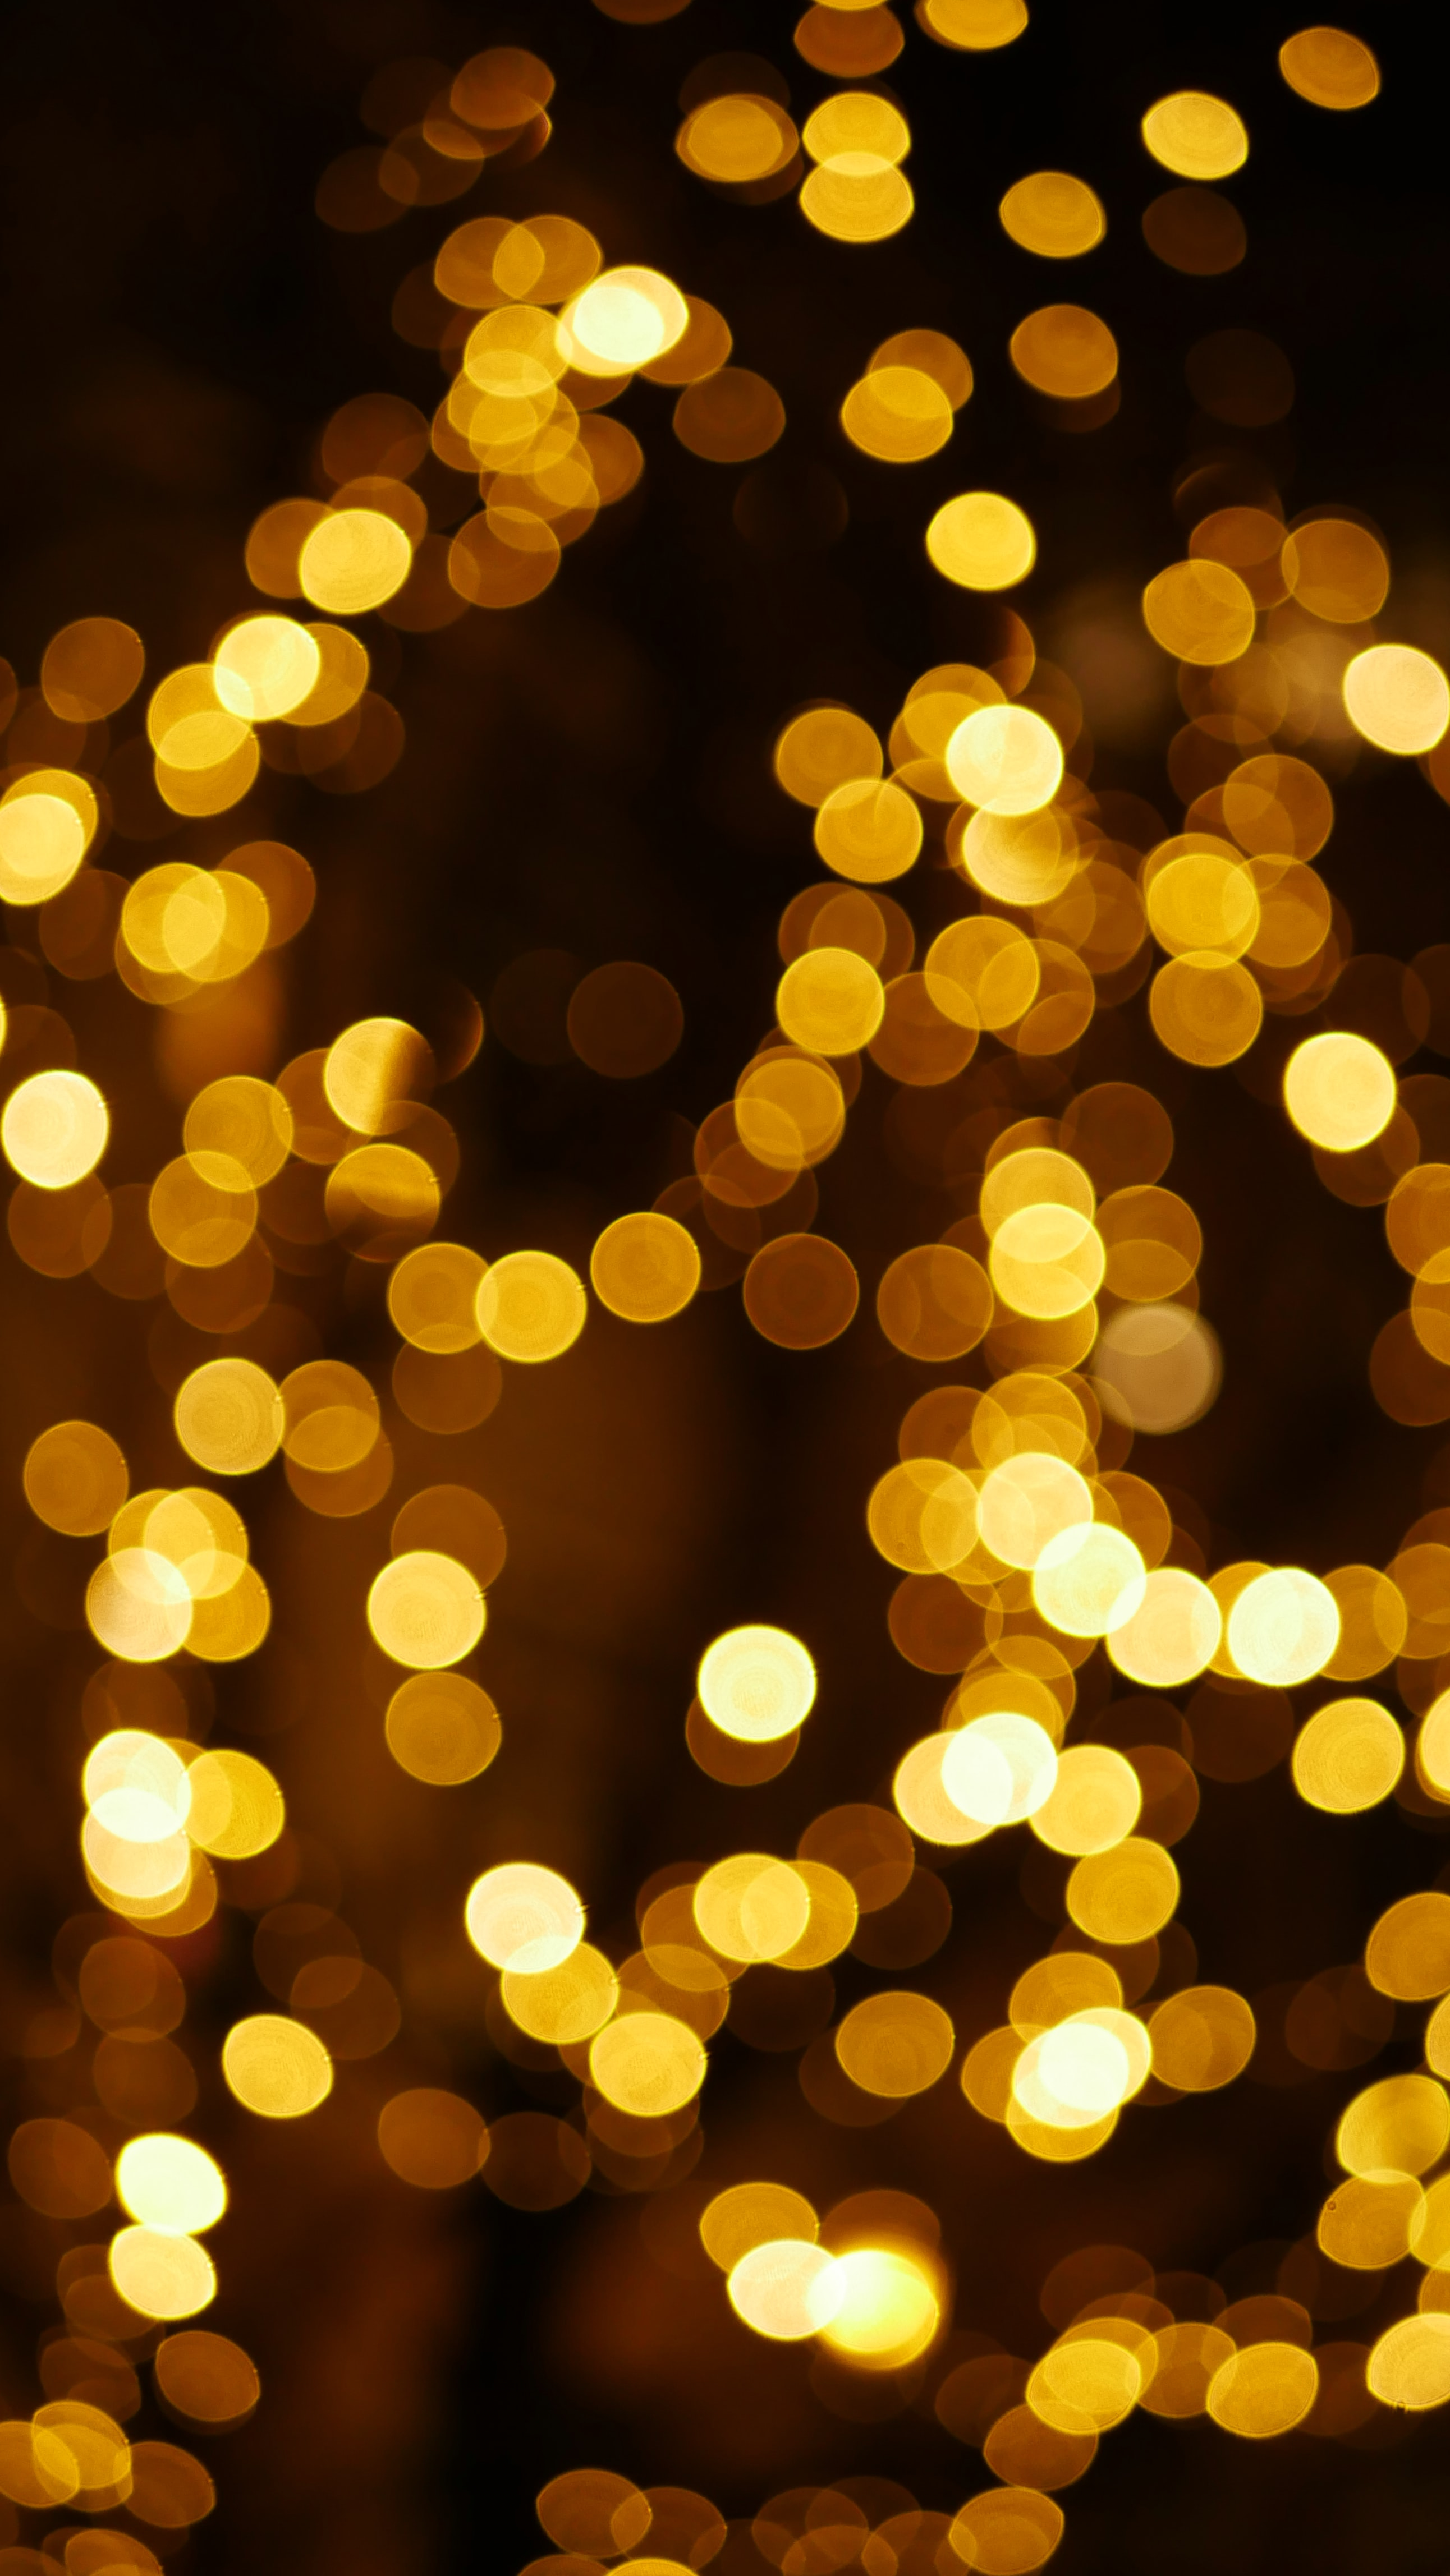 500 Christmas Lights Pictures Hd Download Free Images On Unsplash